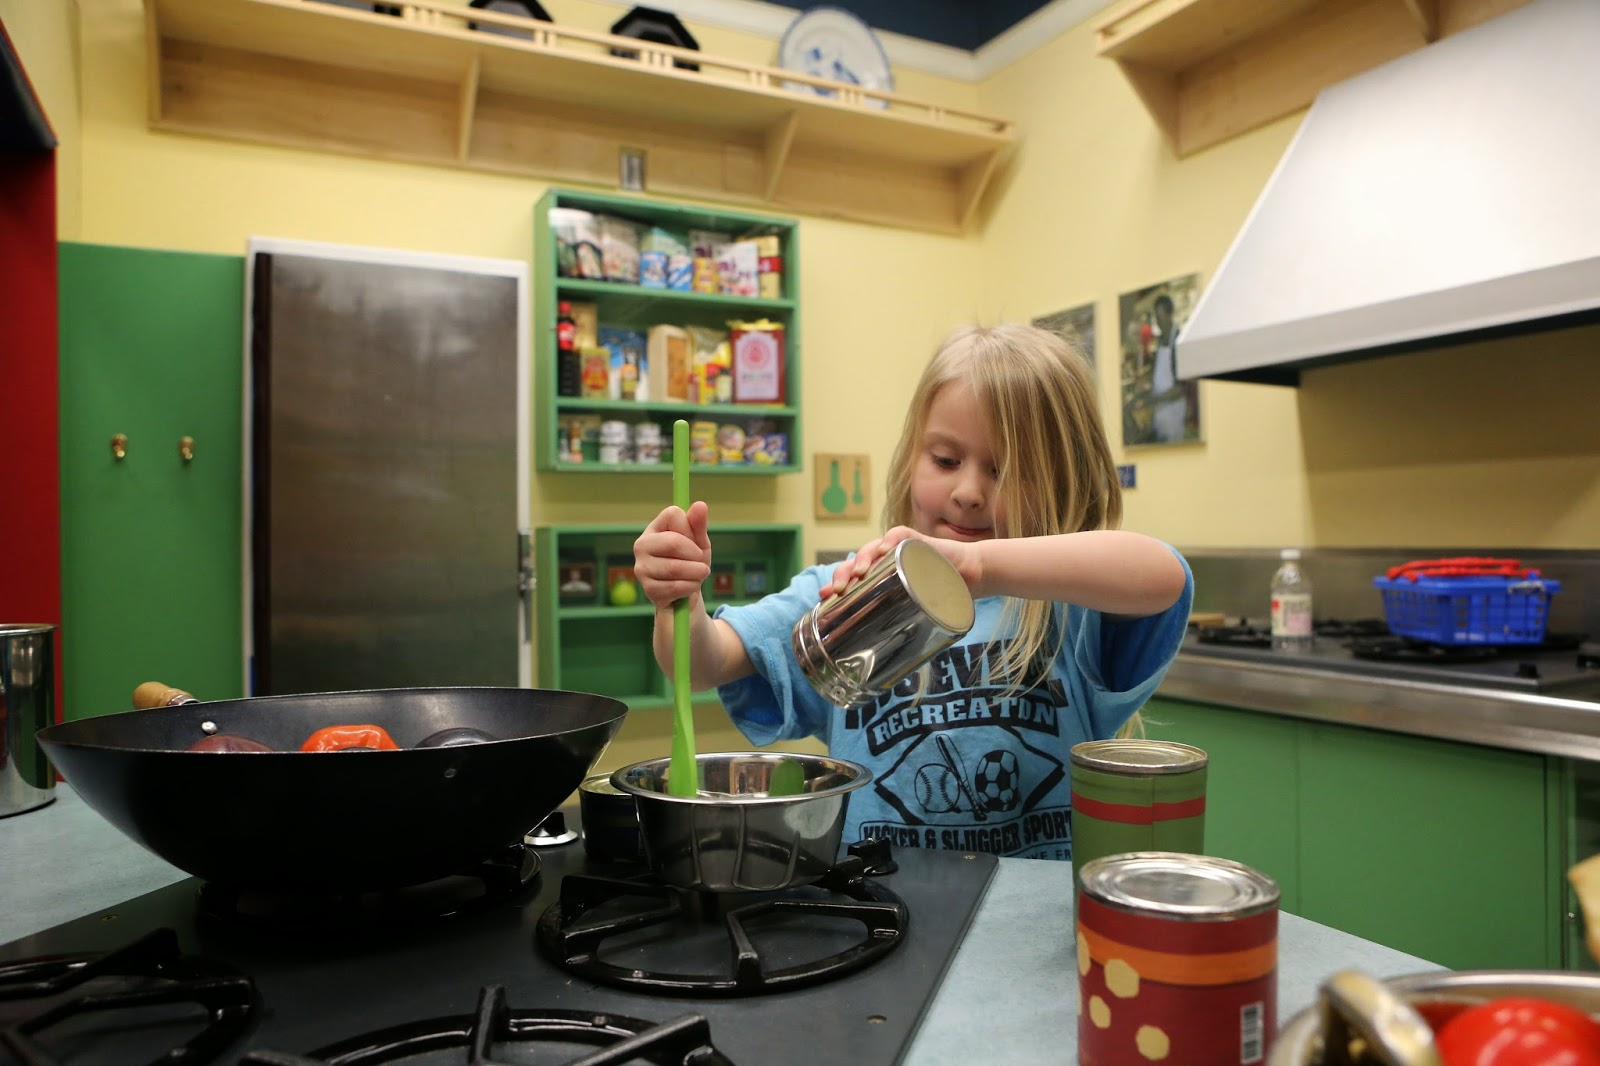 Kids in the Kitchen: Preparing Healthy Meals Together